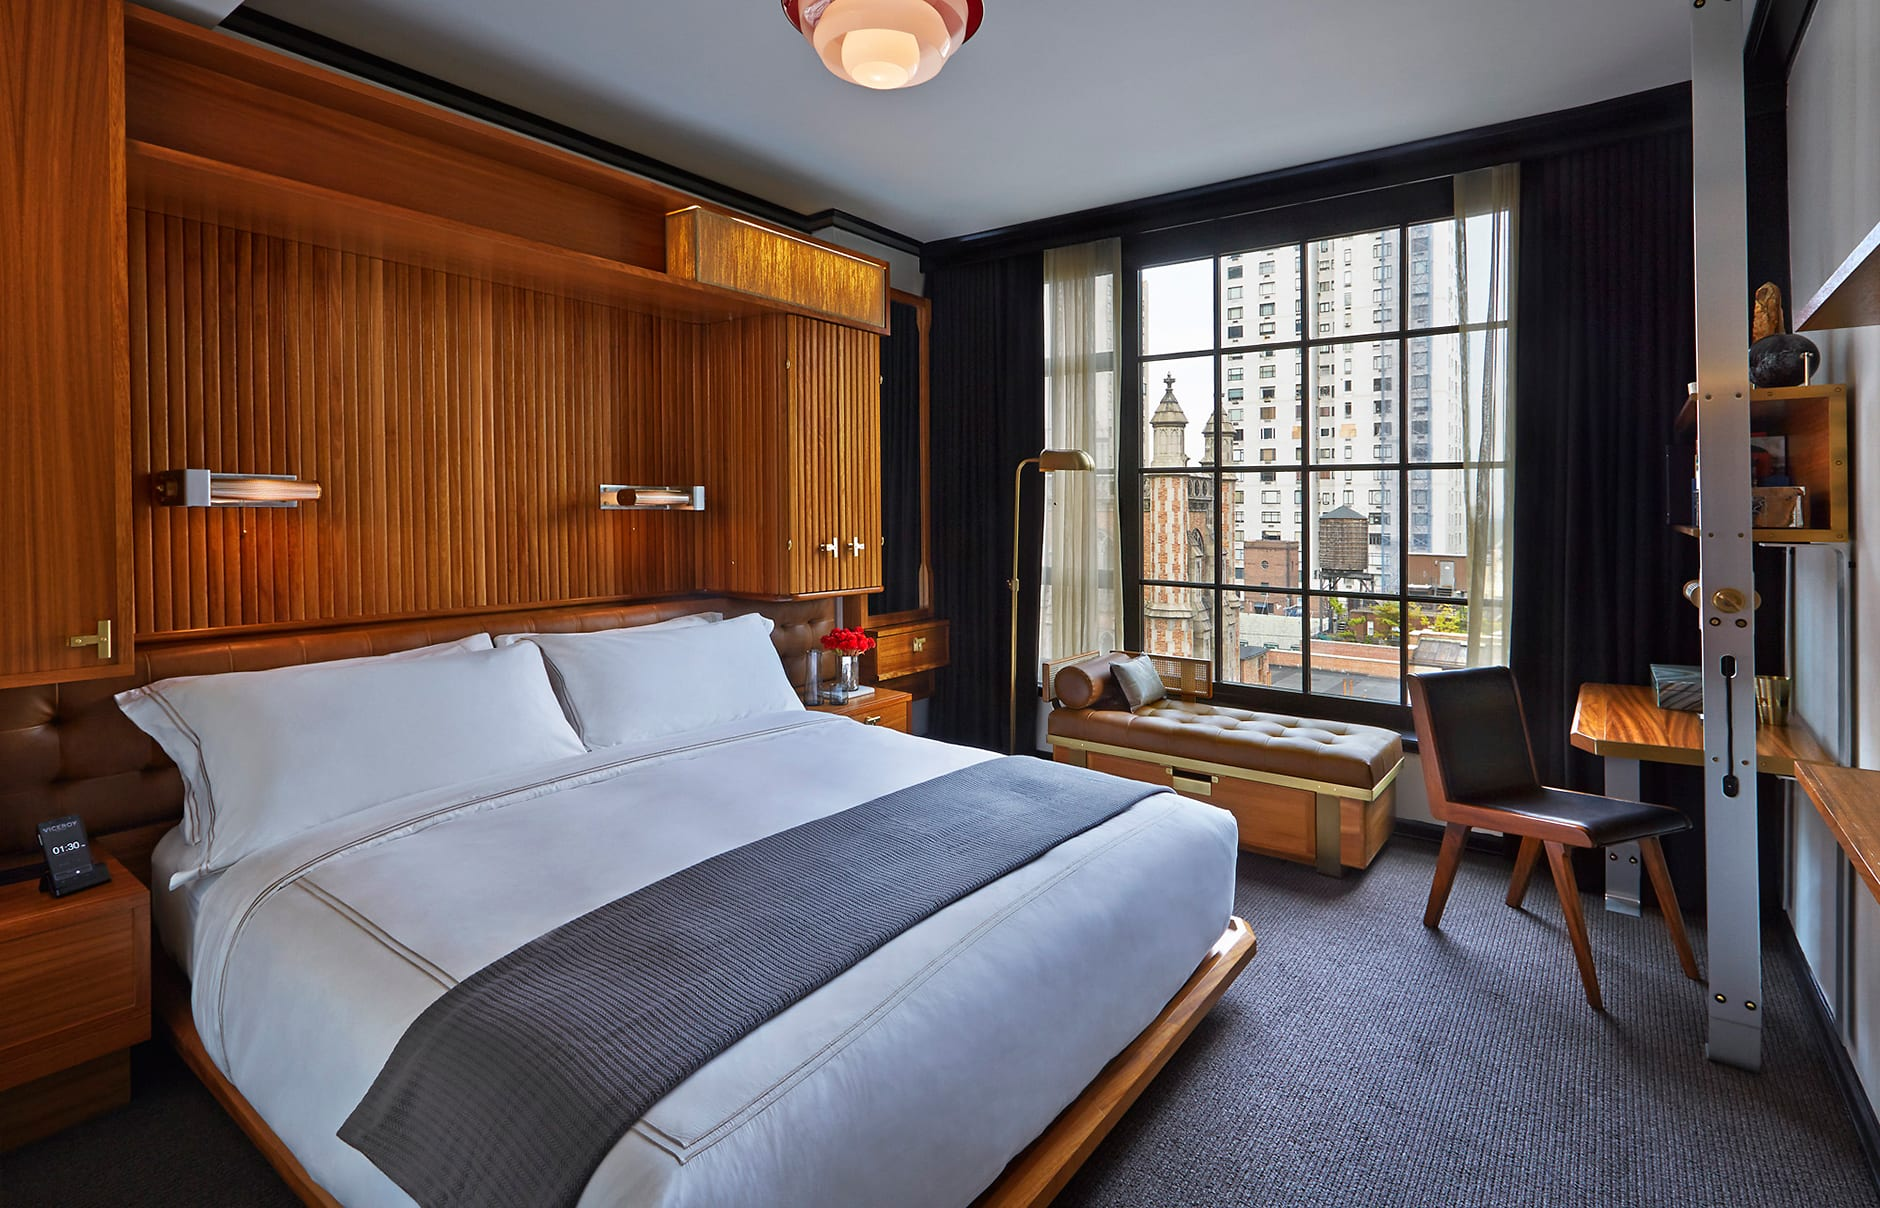 Viceroy Deluxe room. Viceroy New York, USA. © Viceroy Hotel Group.